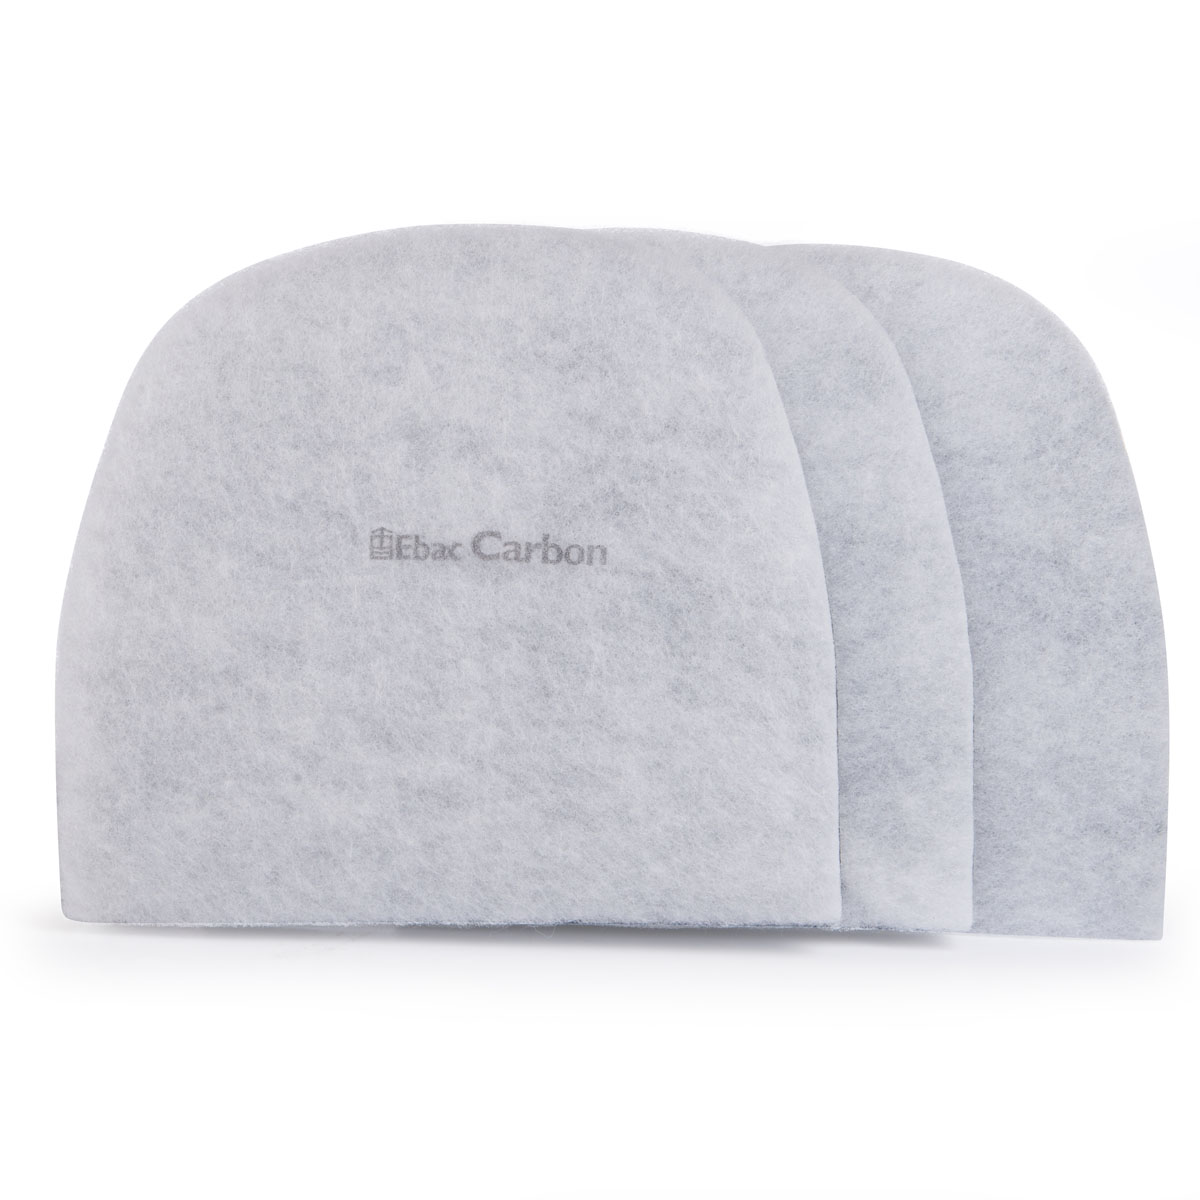 2000 Series Dehumidifier Activated Carbon Filters